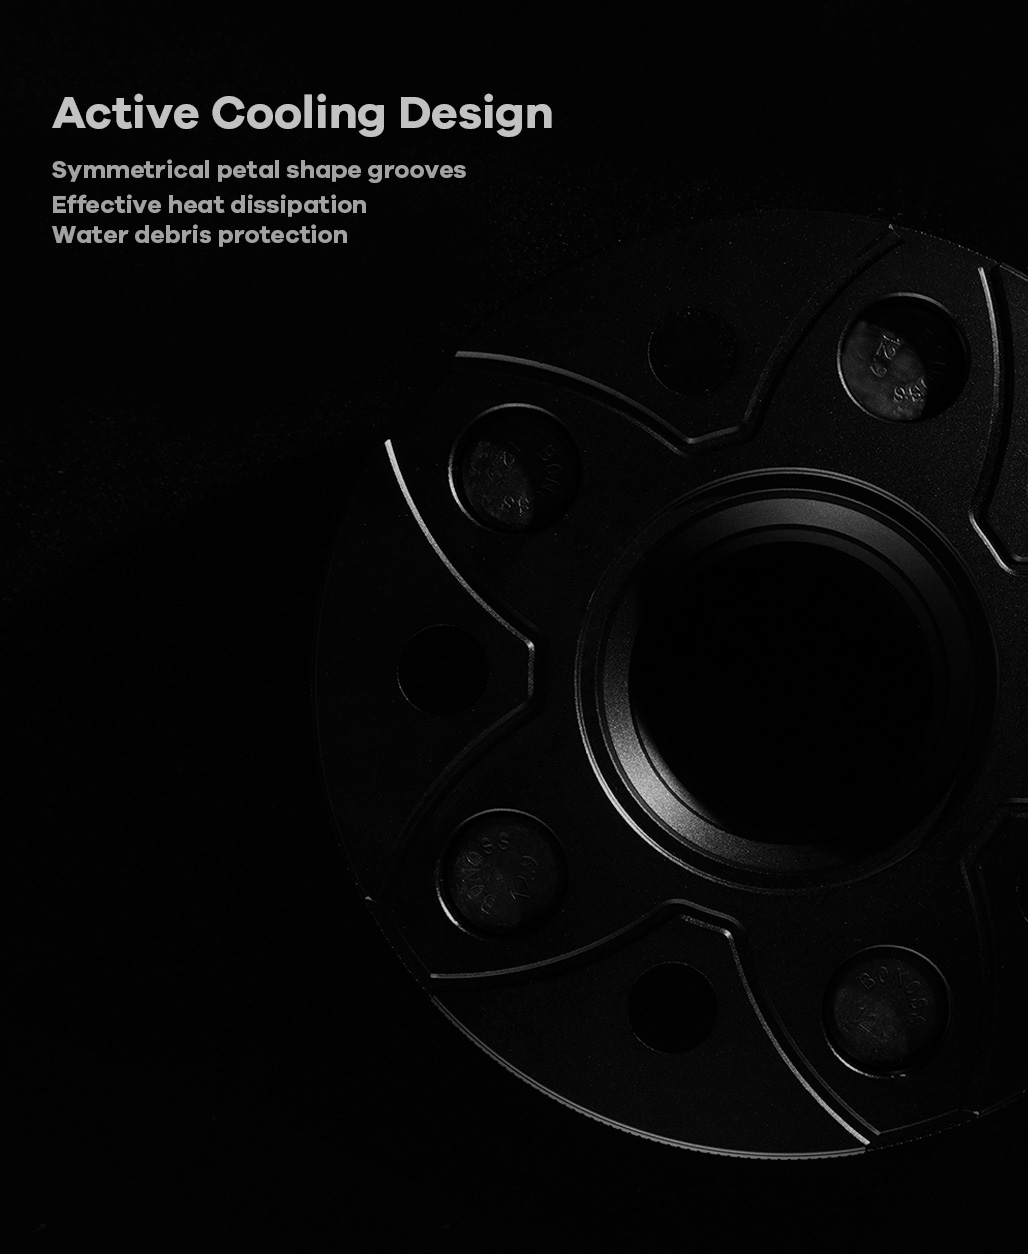 BONOSS Forged Active Cooling Wheel Spacers Hubcentric PCD5x115 CB70.5 AL7075-T6 for Holden Captiva 2014-2018 (3)